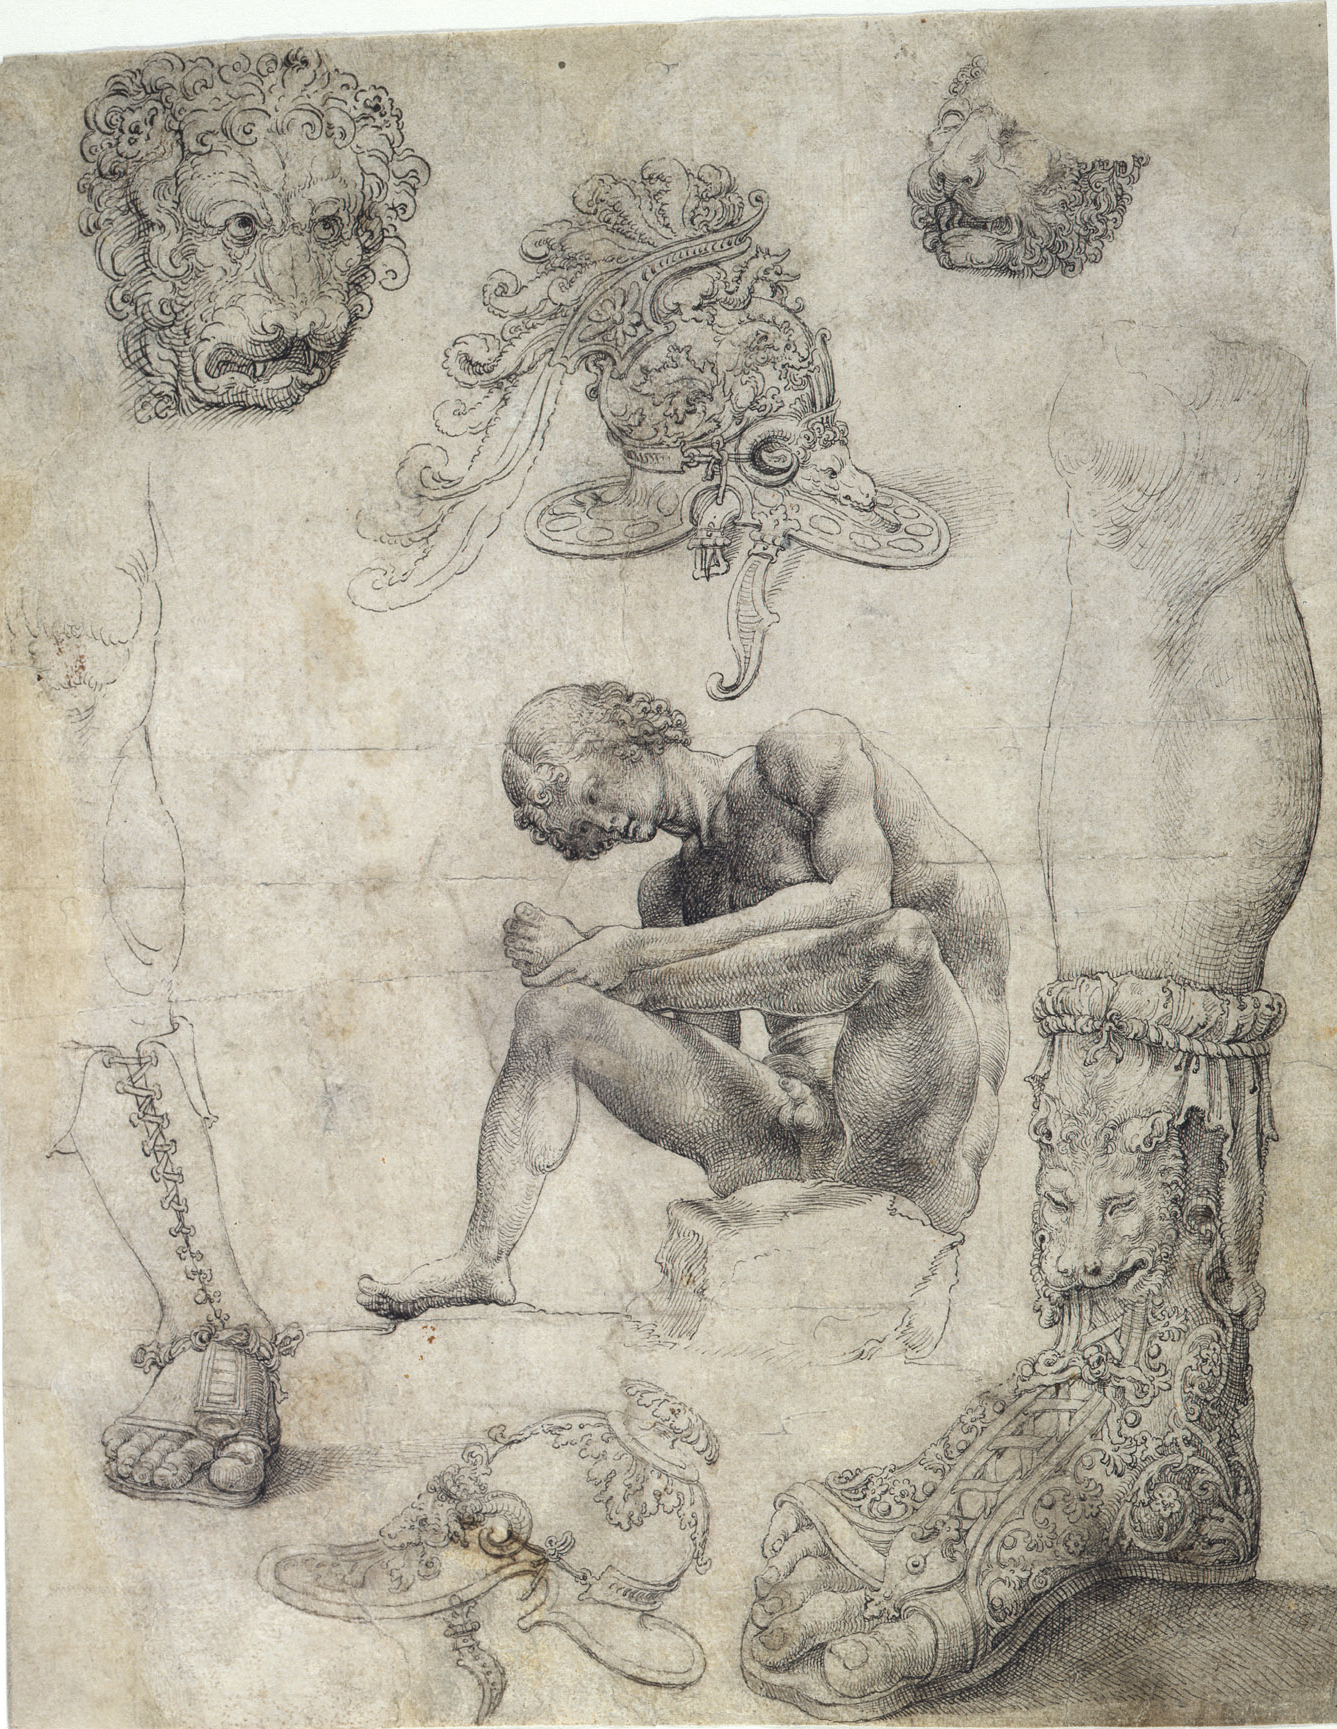 Jan Gossaert - Studi di sculture antiche - 1509 ca. - Leiden University Library